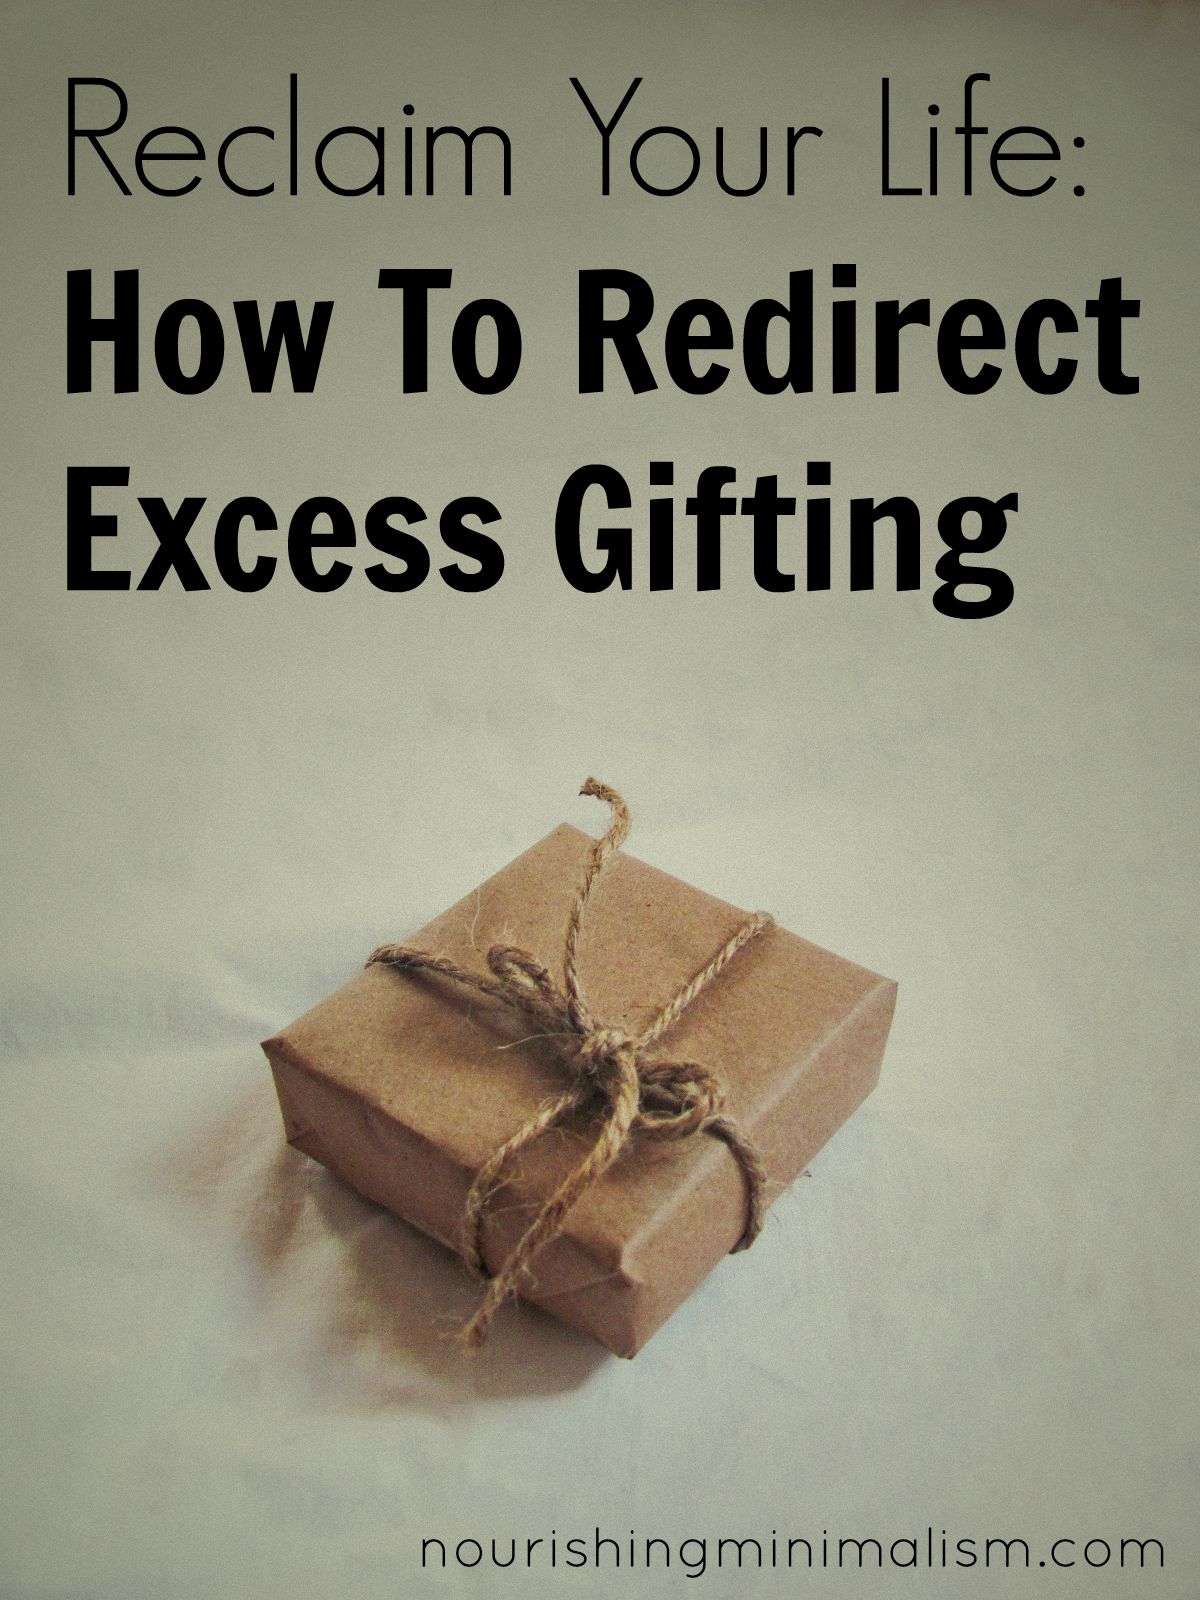 Reclaim Your Life How To Redirect Excess Gifting